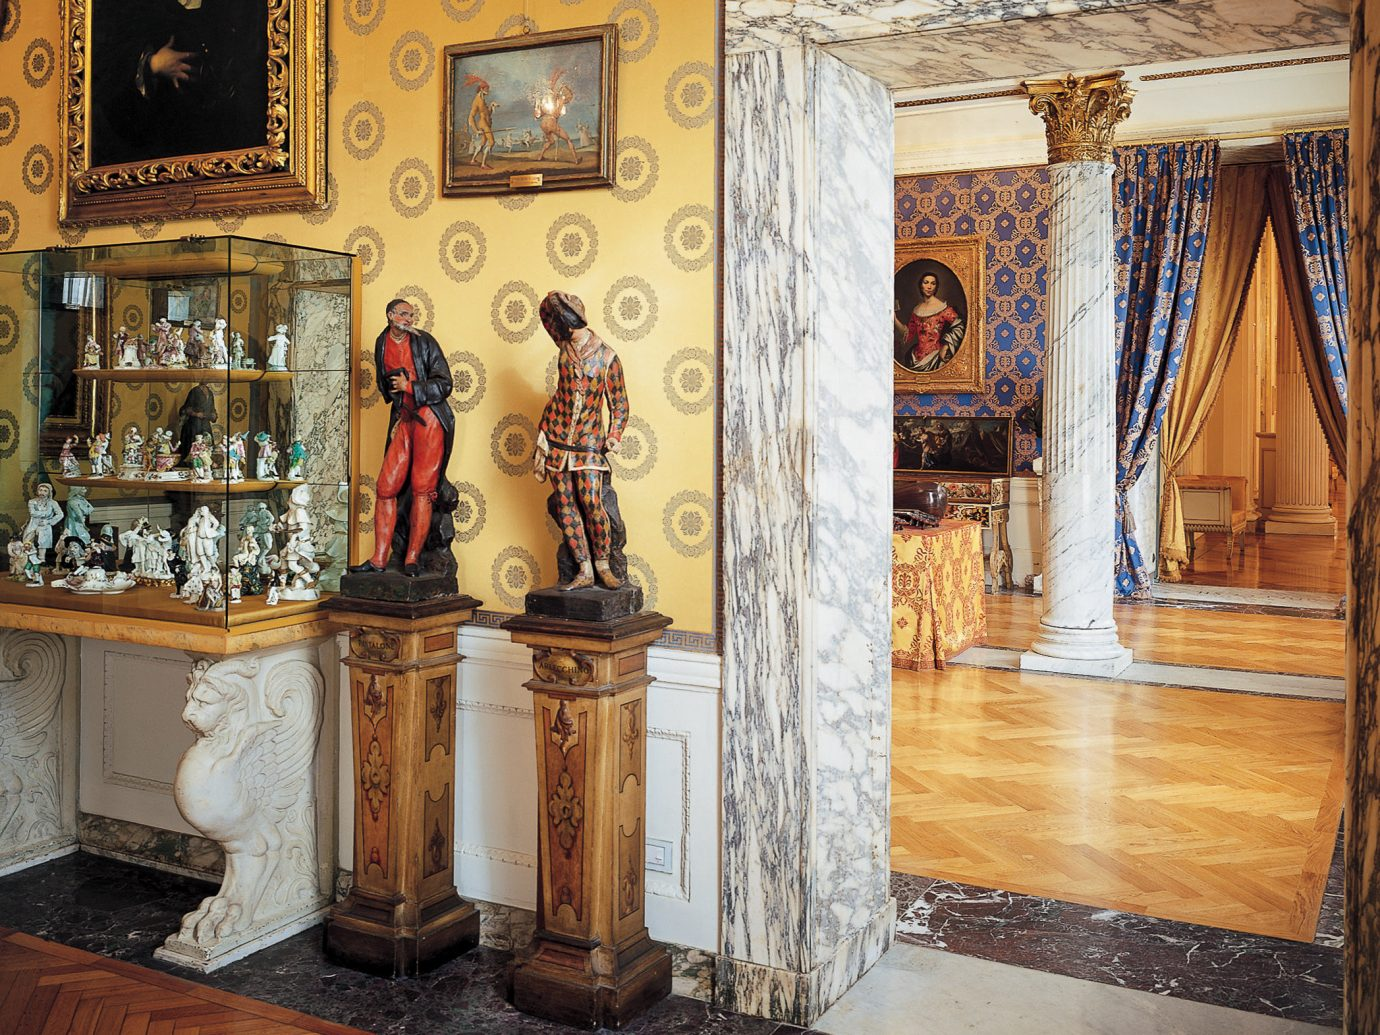 Arts + Culture Italy Milan tourist attraction furniture interior design antique flooring column